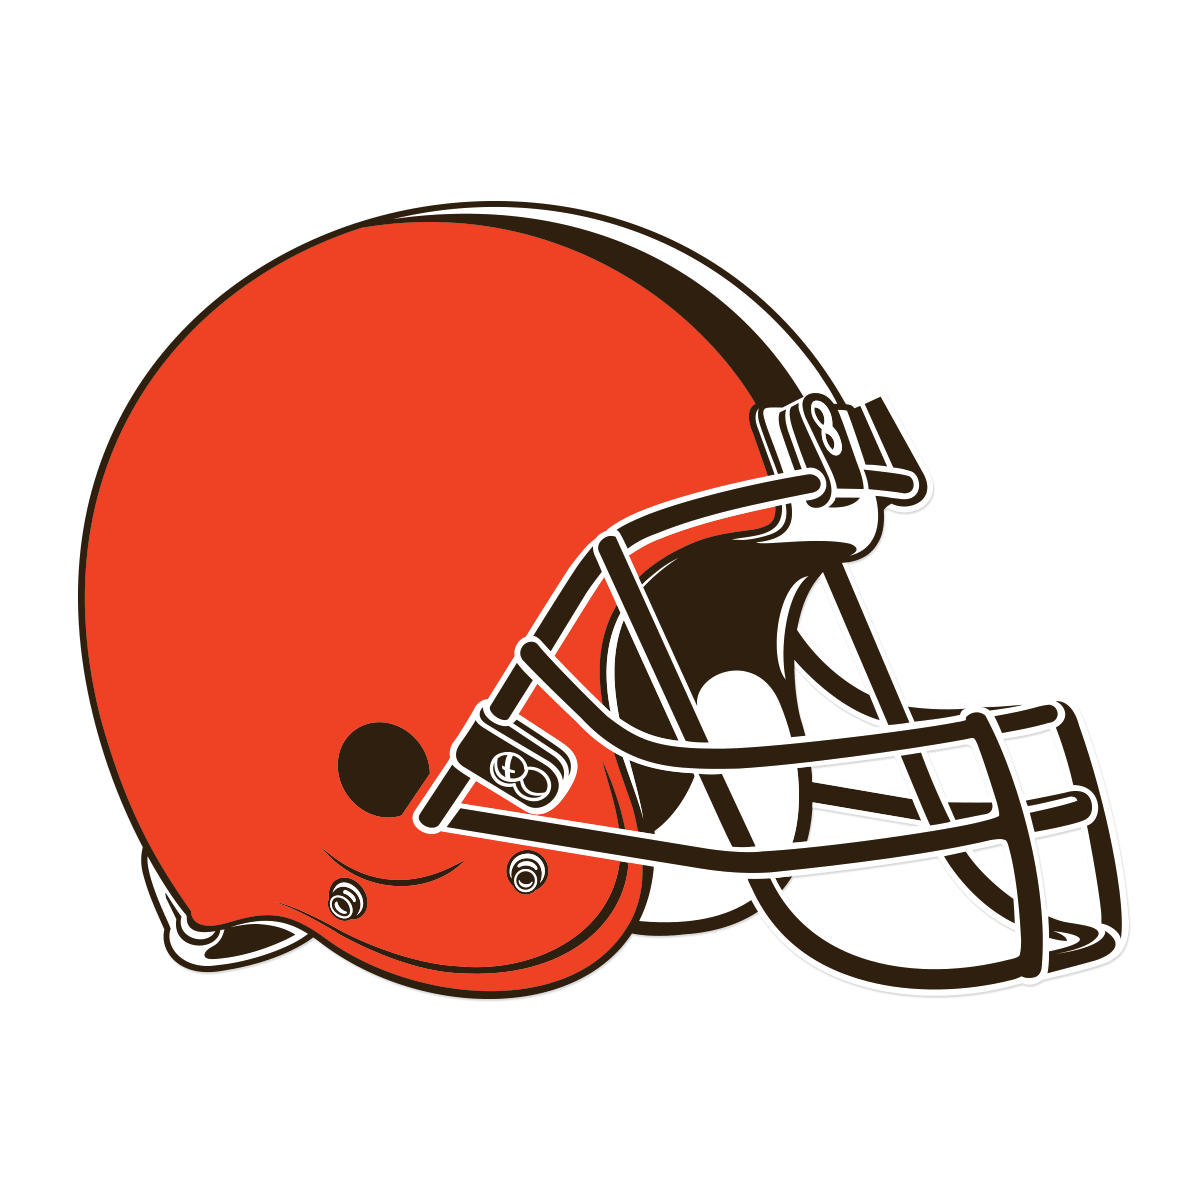 Nfl team logos 2015 png. Vs browns logo